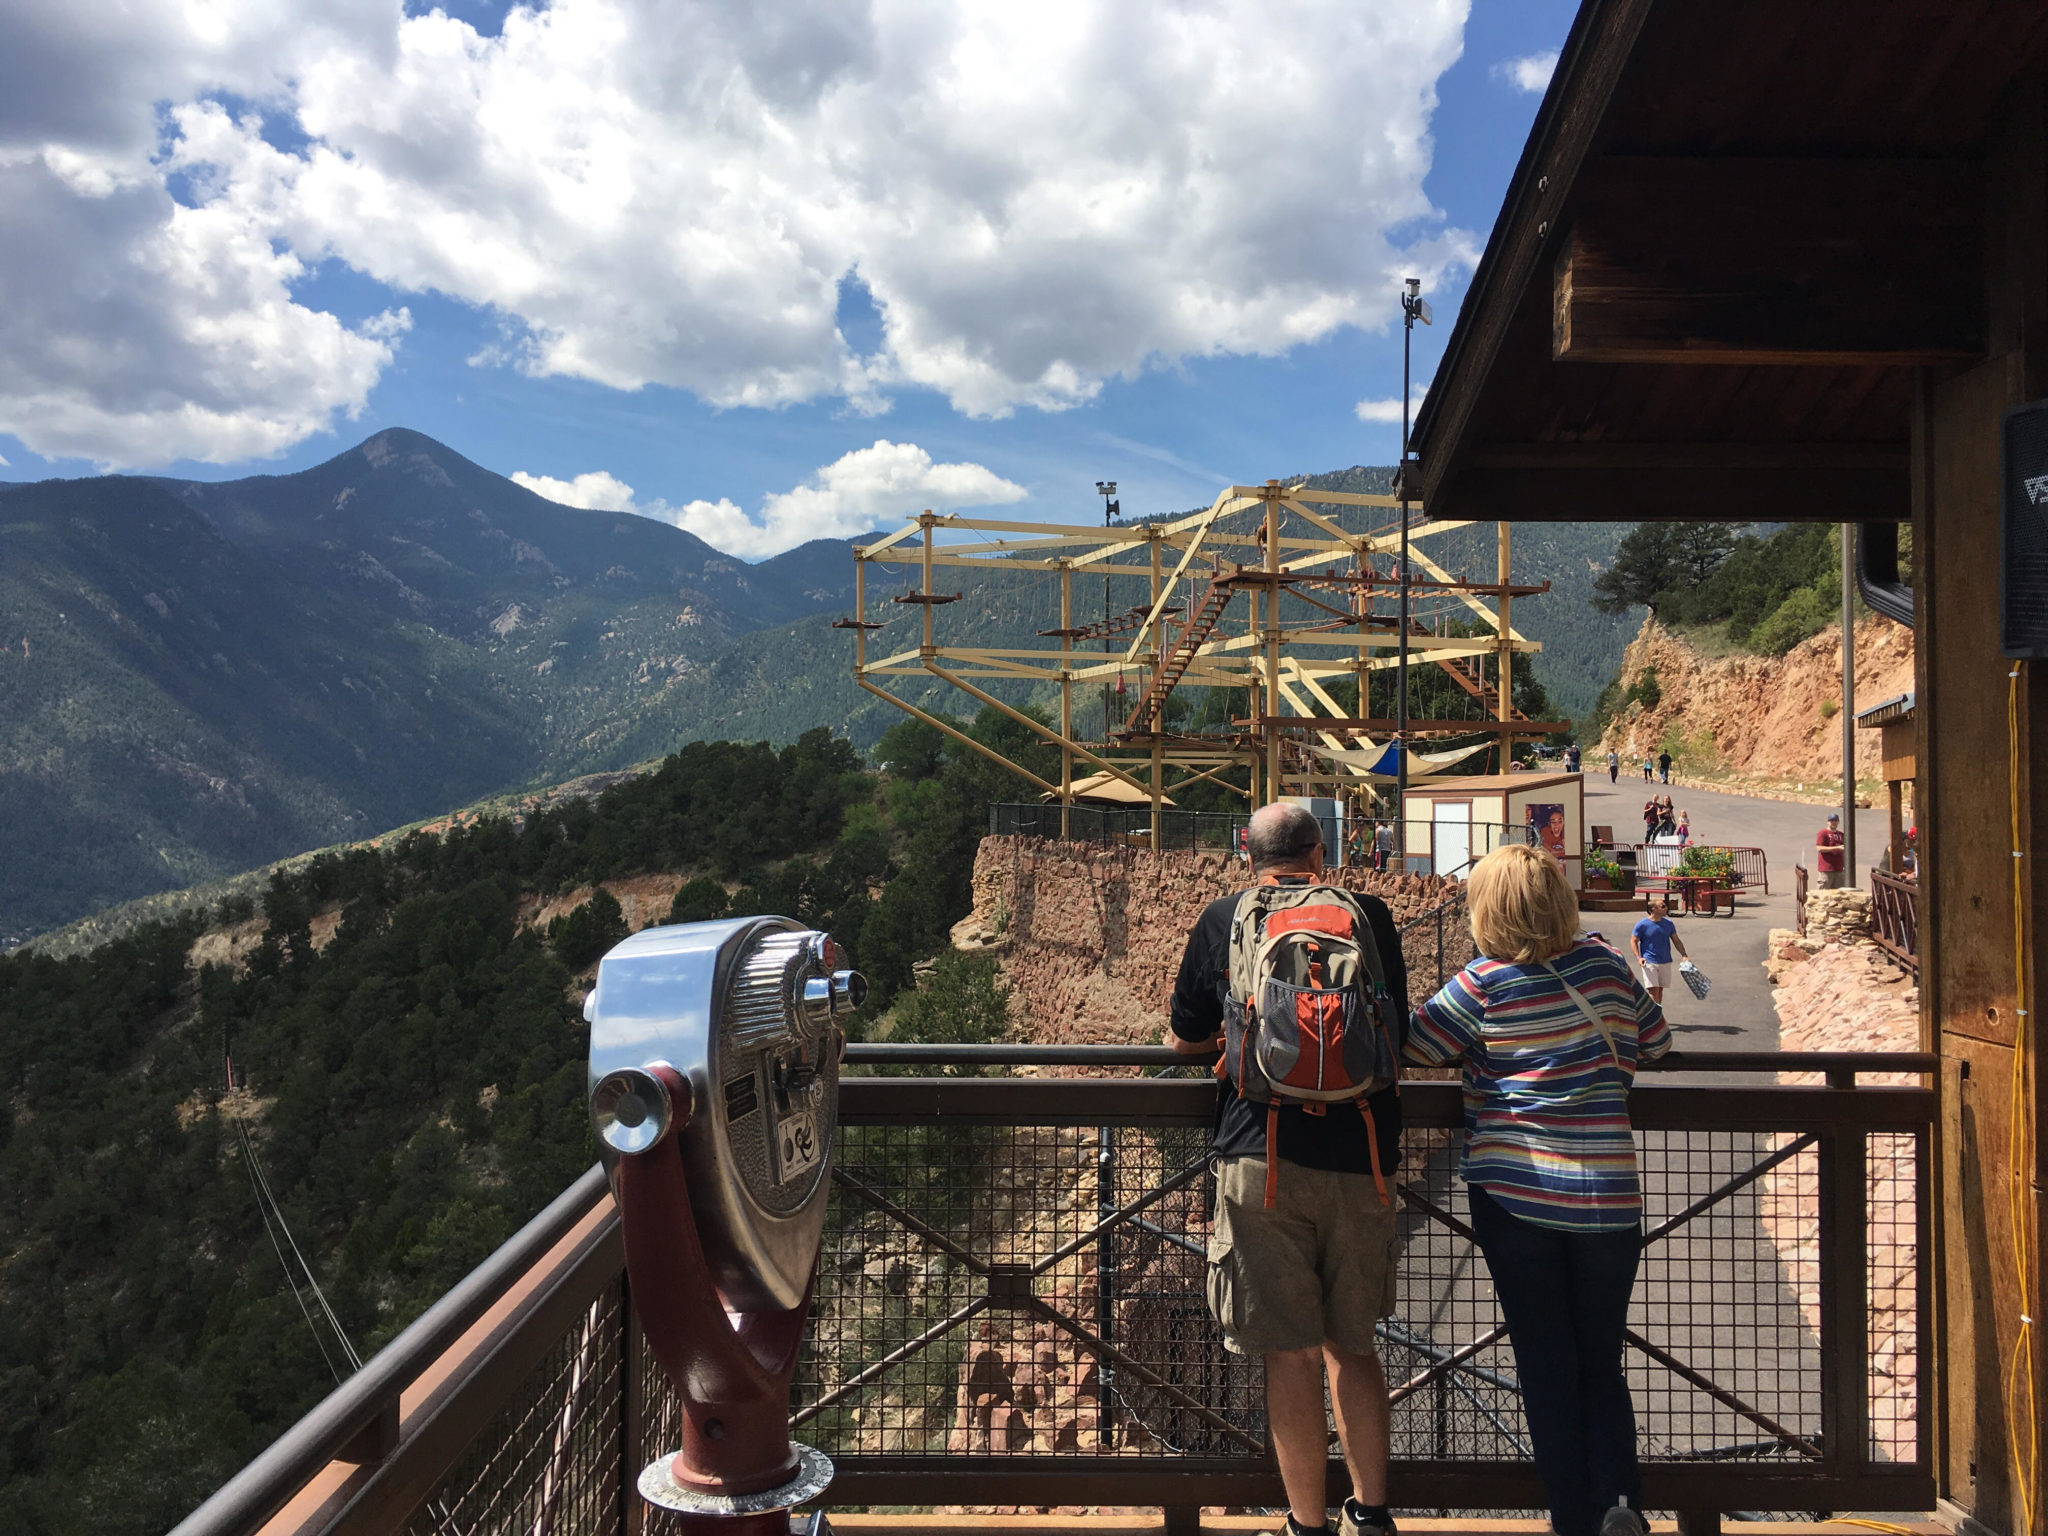 A nice view from the balcony at Cave of the Winds in Manitou Springs. (Dave Burdick/Denverite)